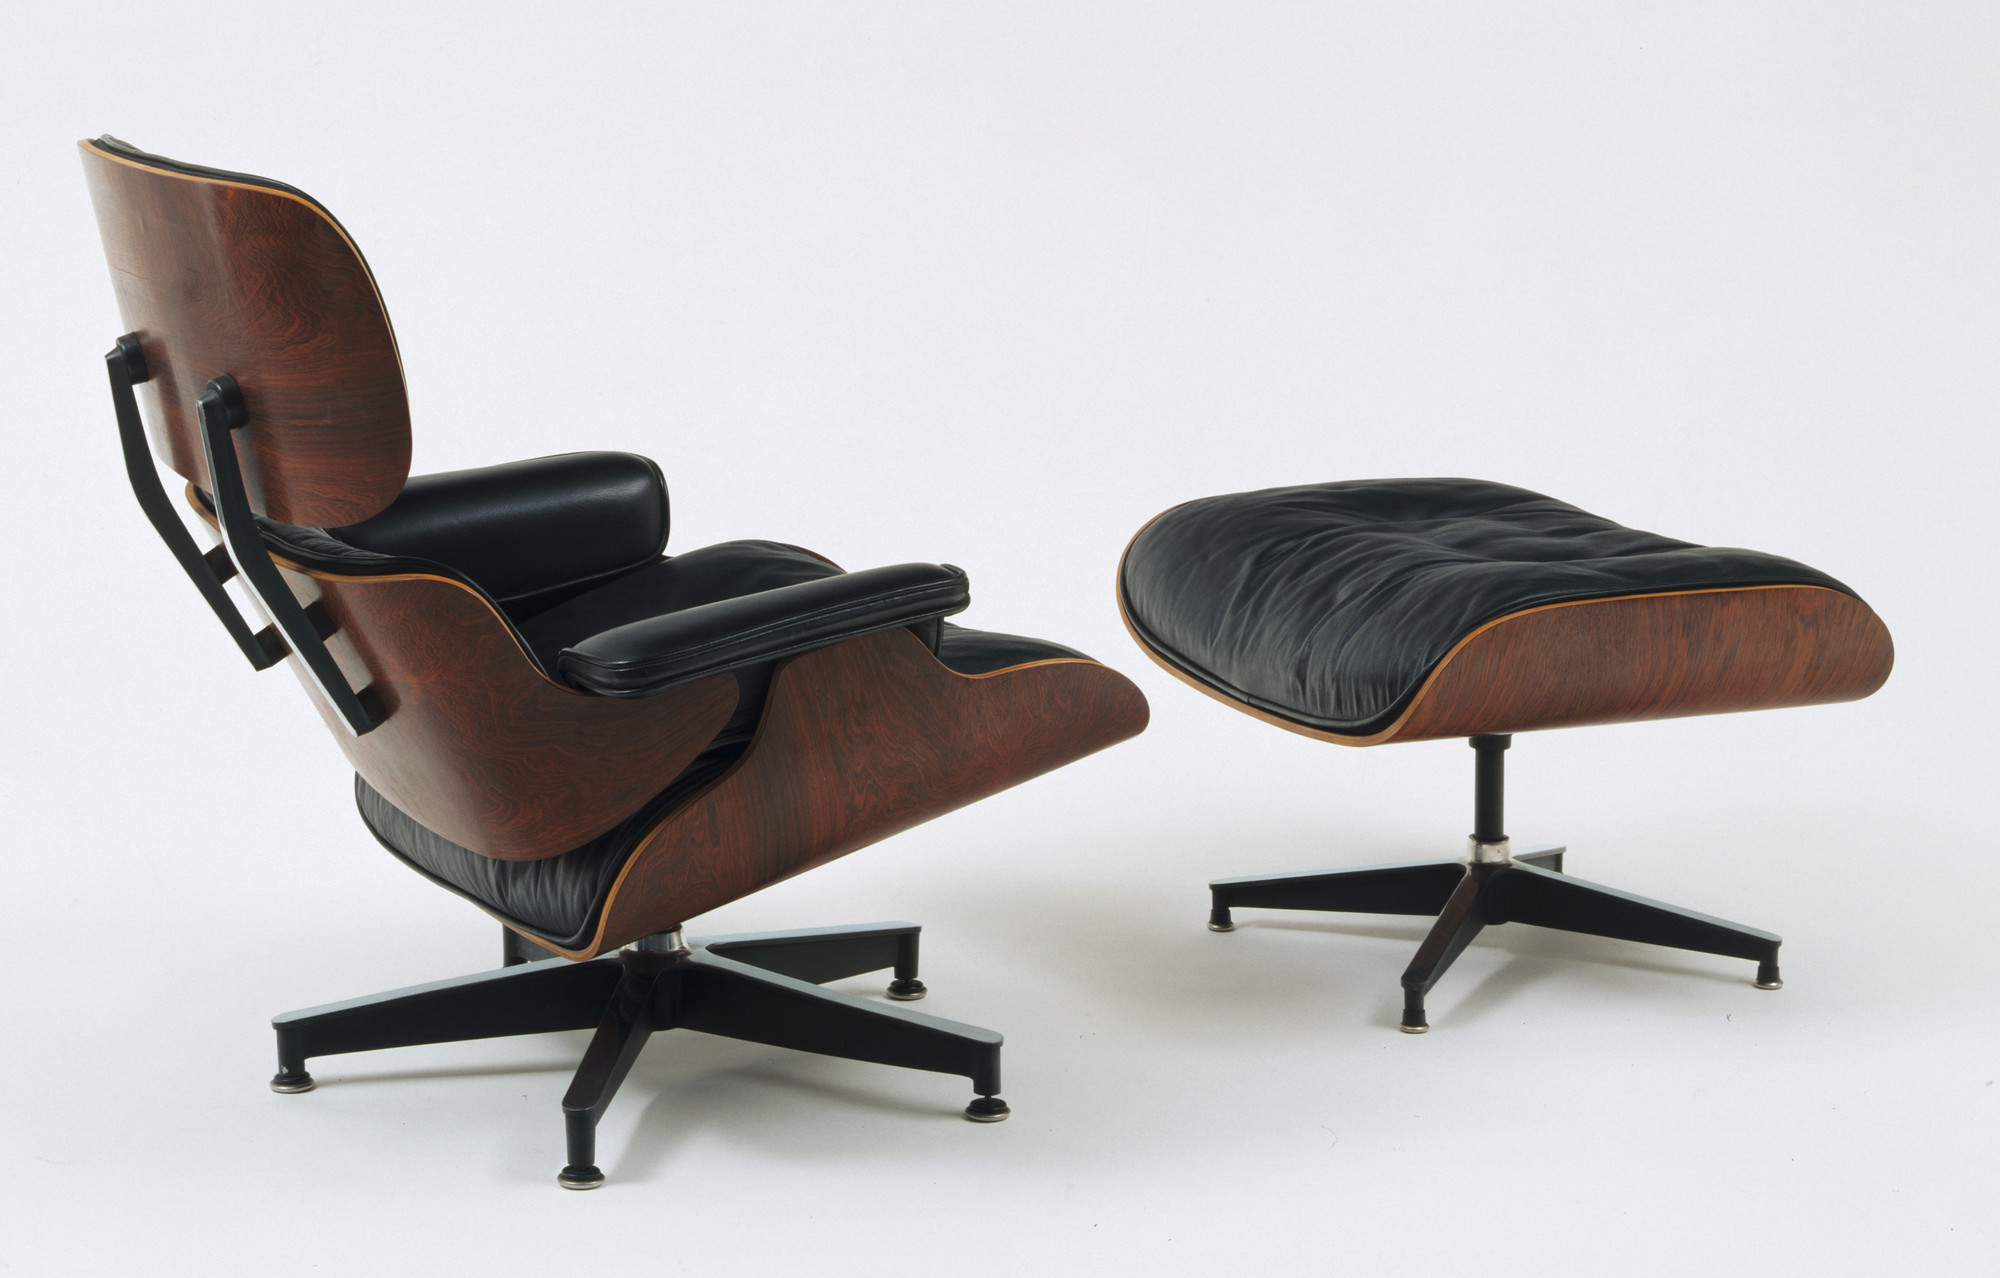 Pleasant Charles Eames Ray Eames Lounge Chair And Ottoman 1956 Moma Theyellowbook Wood Chair Design Ideas Theyellowbookinfo